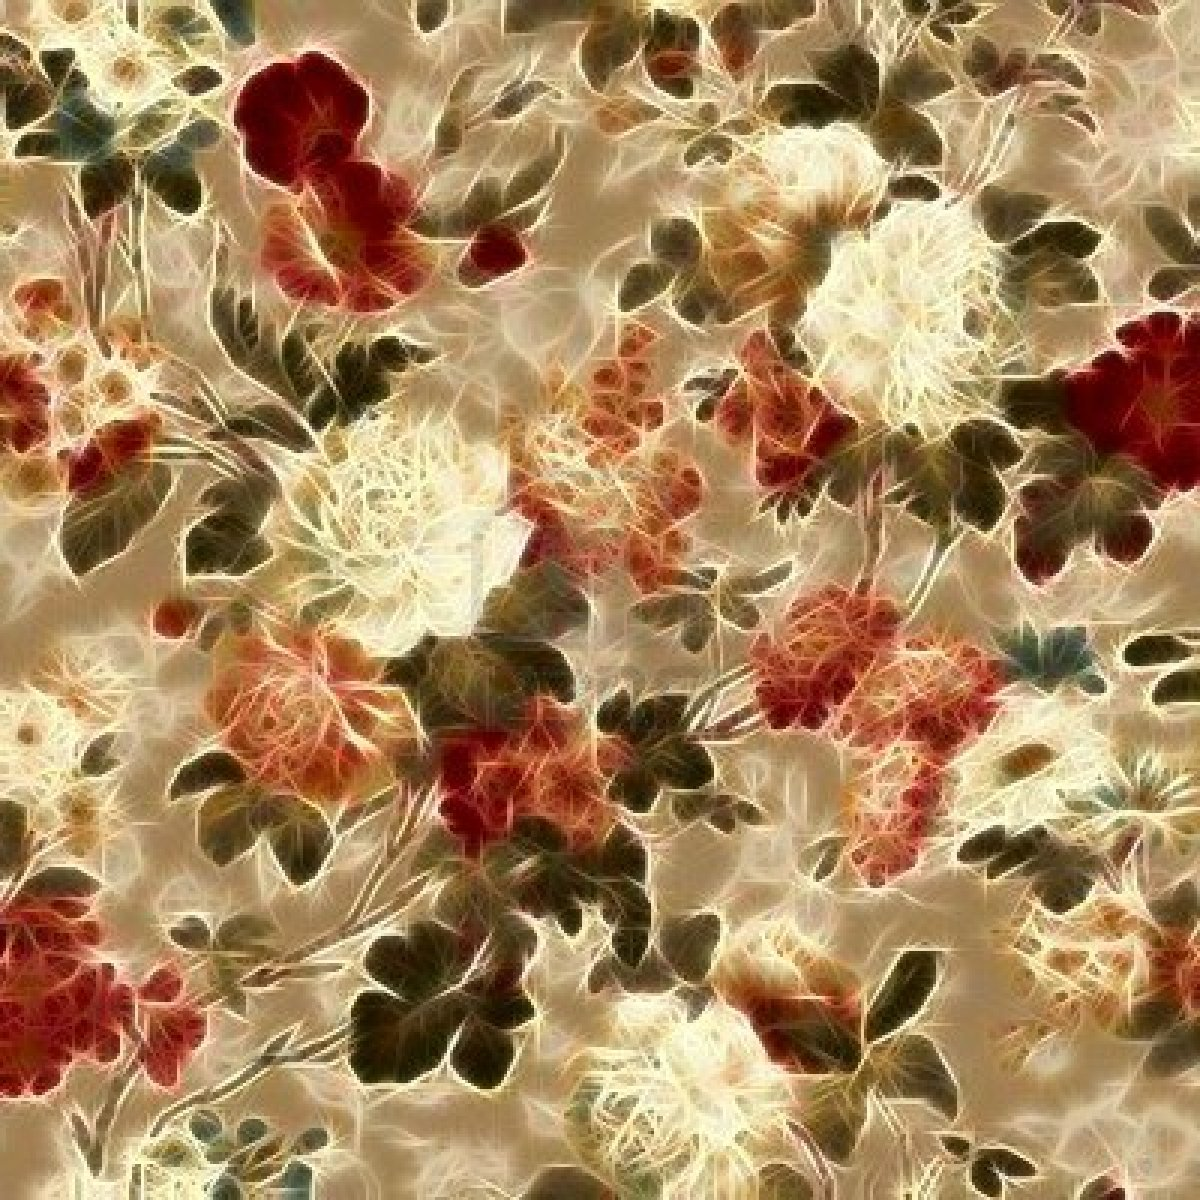 Freebies vintage floral background for blogs budakvanilla 39 s for Vintage tapete